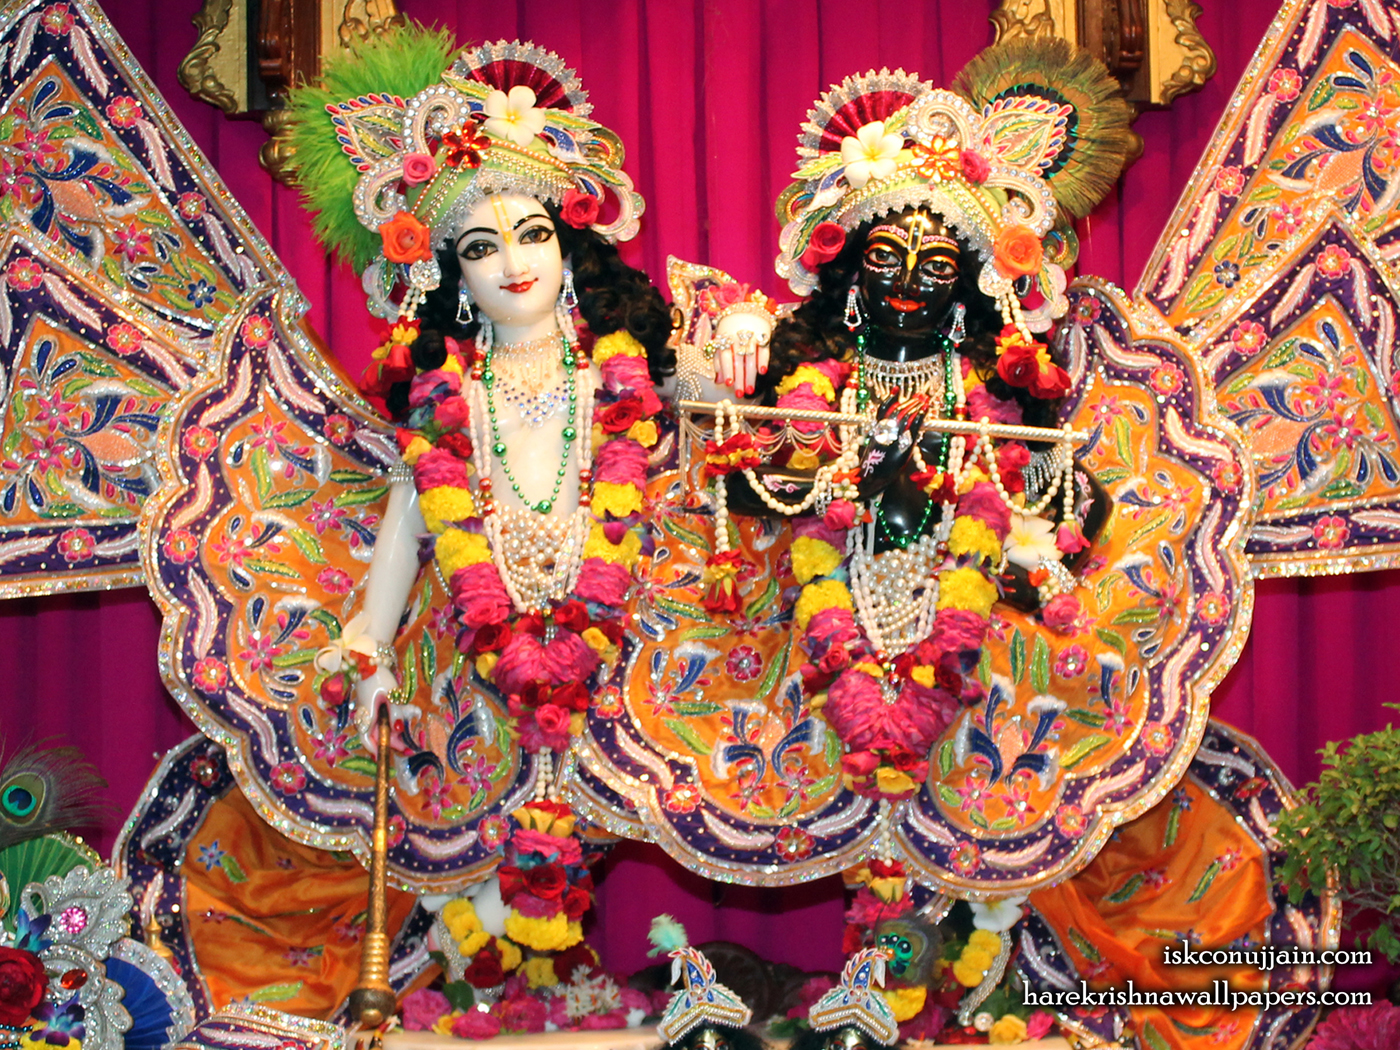 Sri Sri Krishna Balaram Wallpaper (013) Size 1400x1050 Download